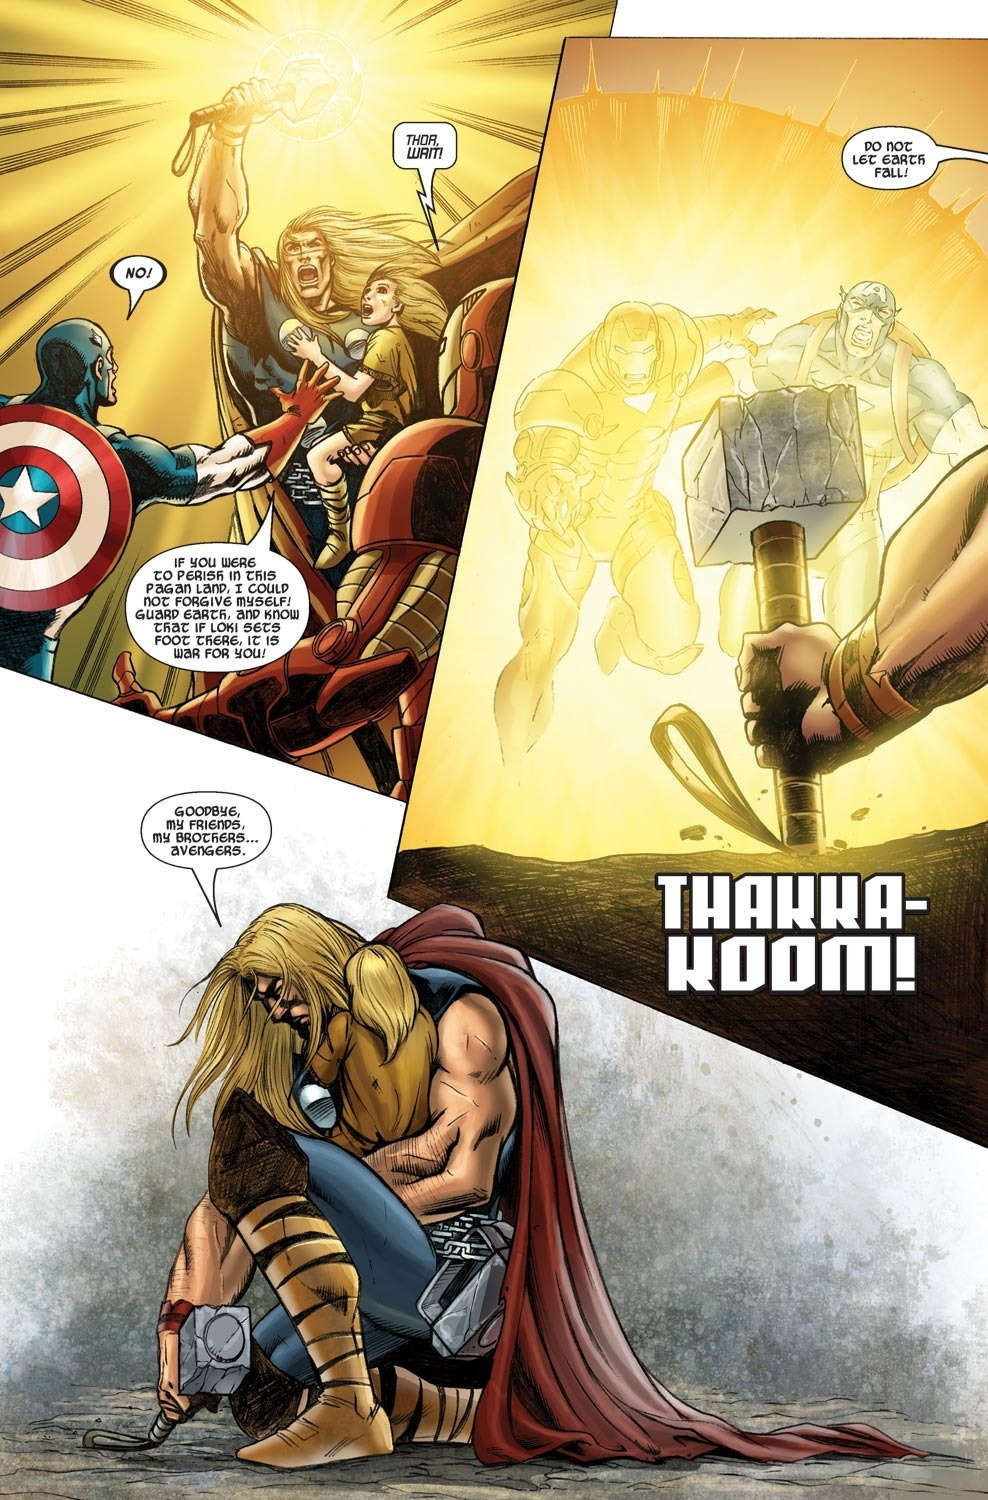 Thor BFRs Captain America and Extremis Iron Man faster than they could react